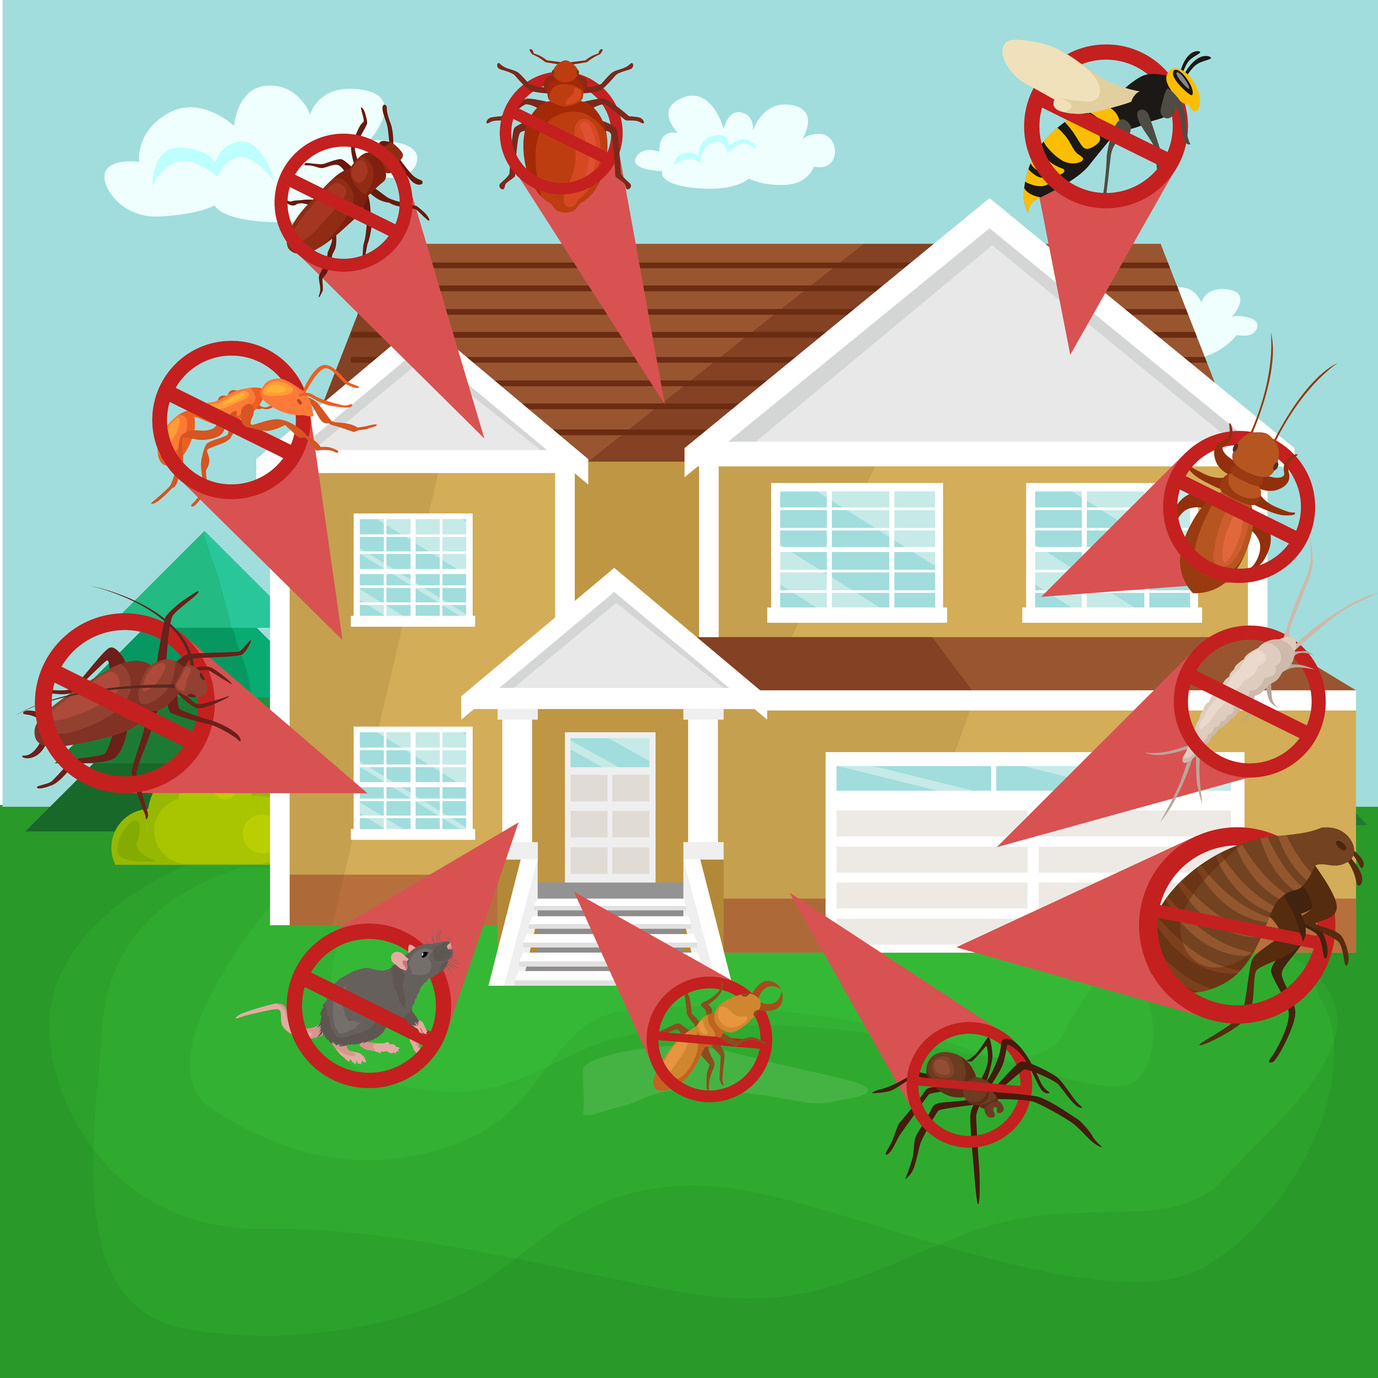 Effective pest and termite treatment in Rustenburg, Brits, Hartbeespoort (Harties), Pretoria and Johannesburg areas